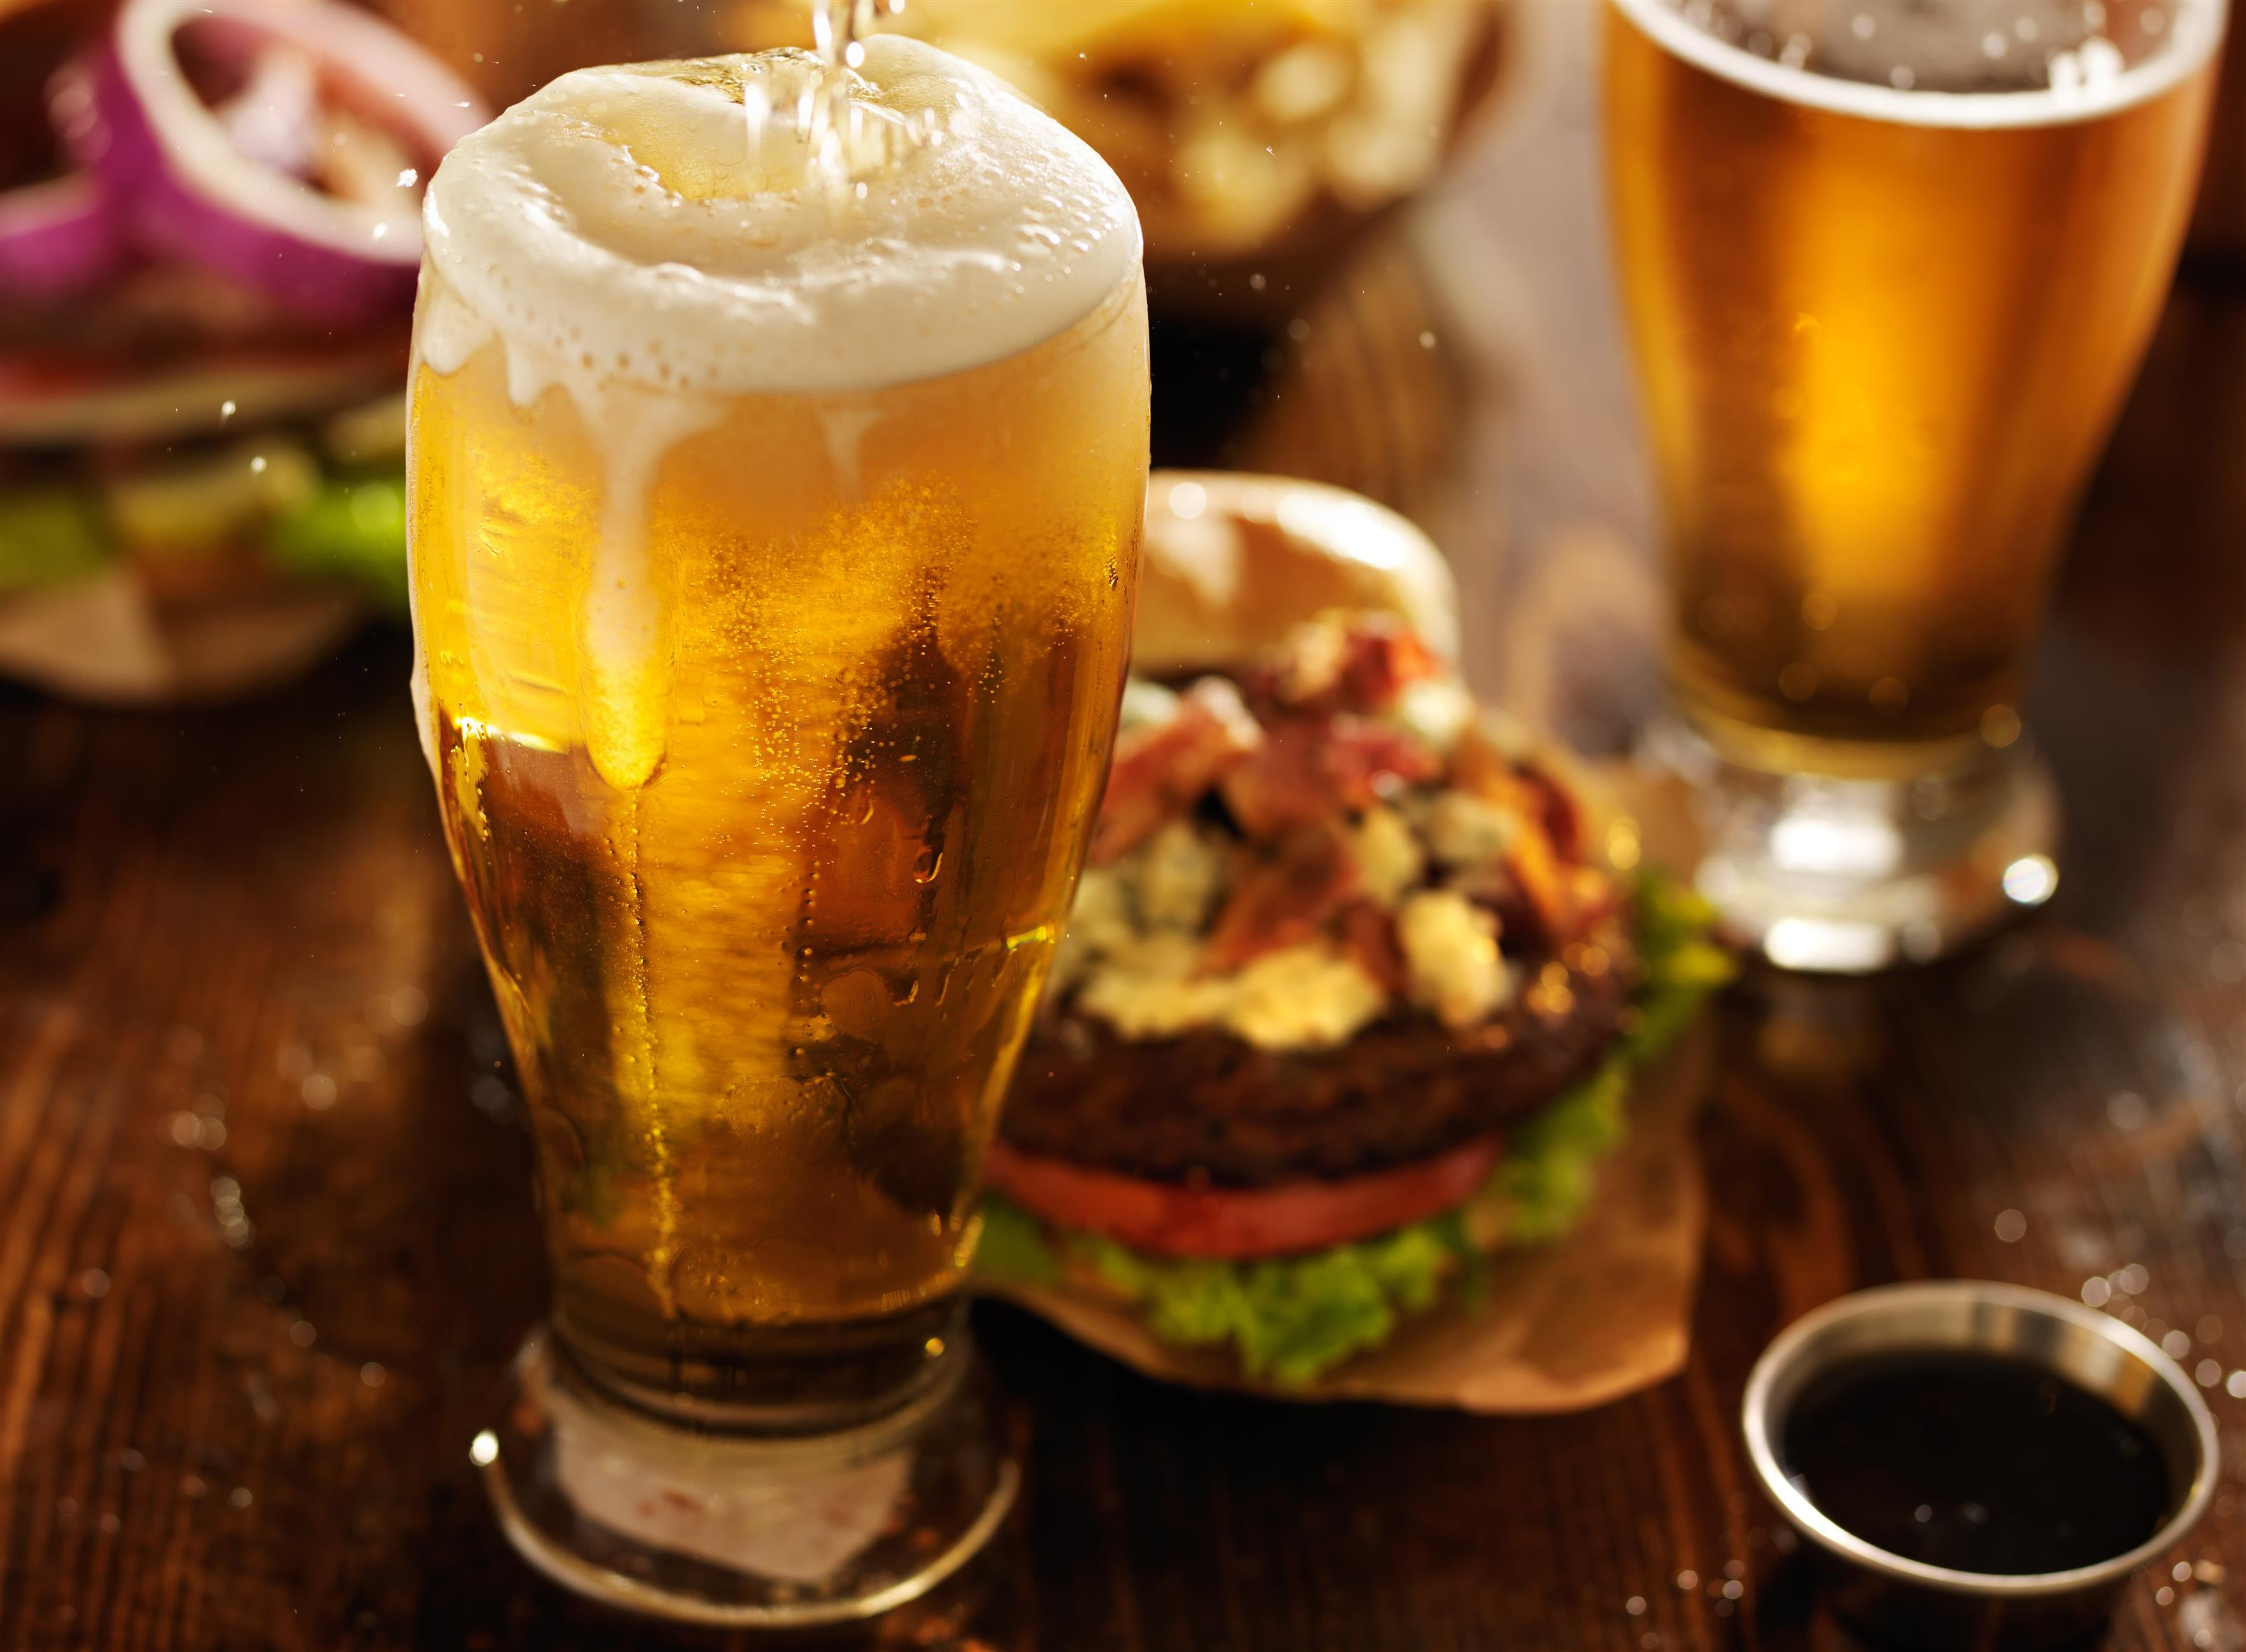 Beer being poured into a pint glass with a bacon cheese burger and a pint of beer blurred in the background